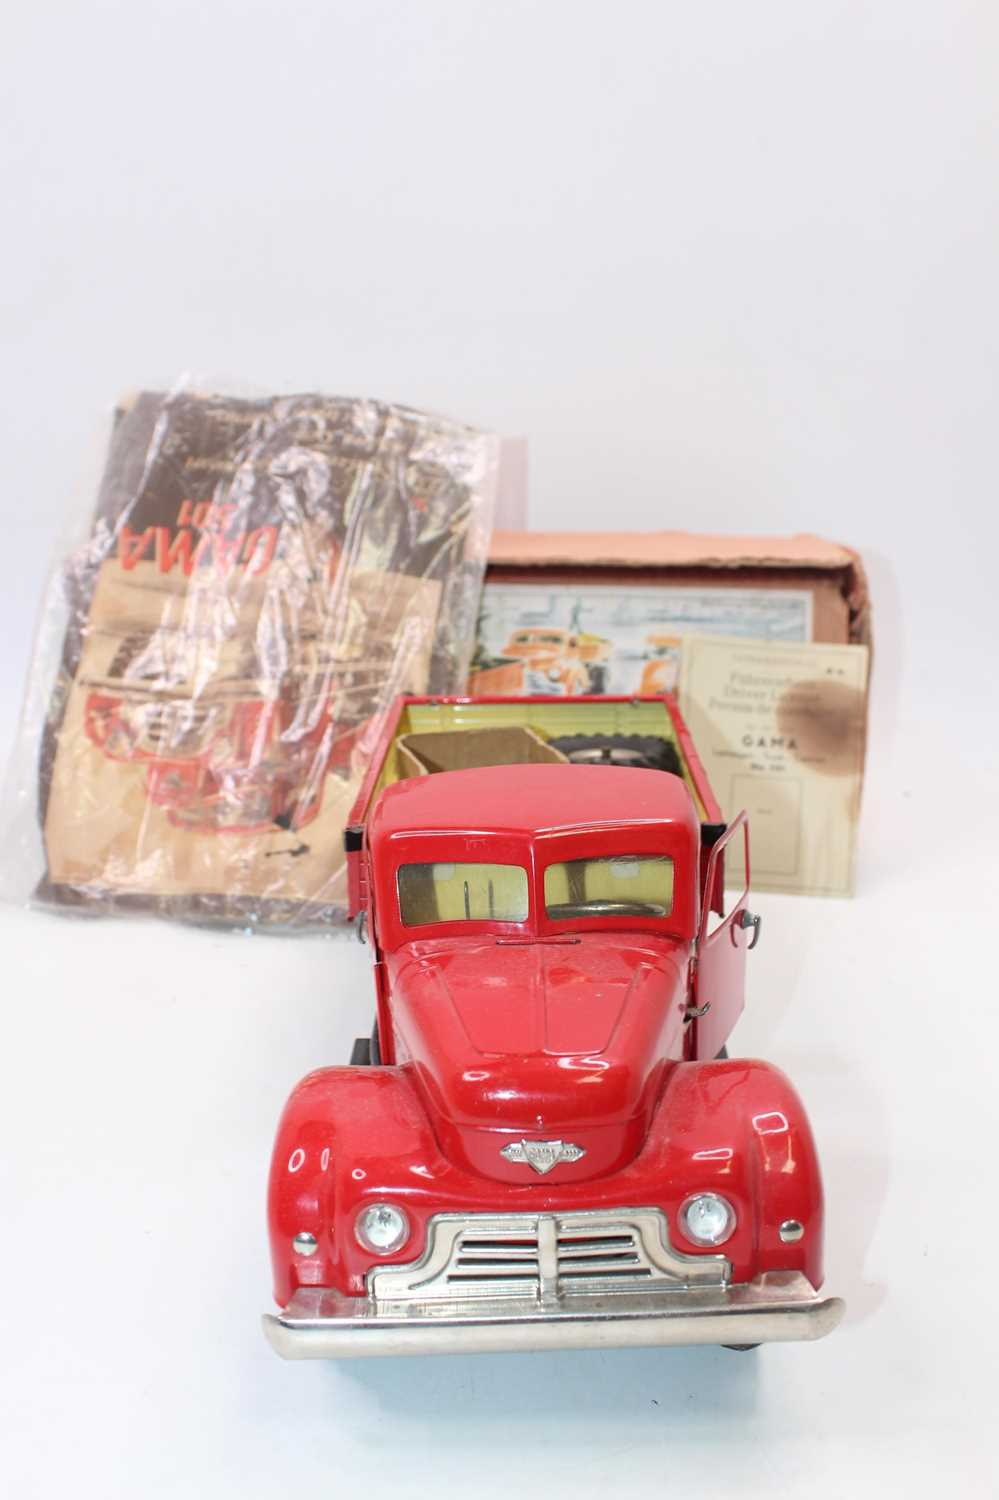 Gama No.501 battery operated and tinplate tipping truck, comprising red cab and back, black chassis, - Image 6 of 6